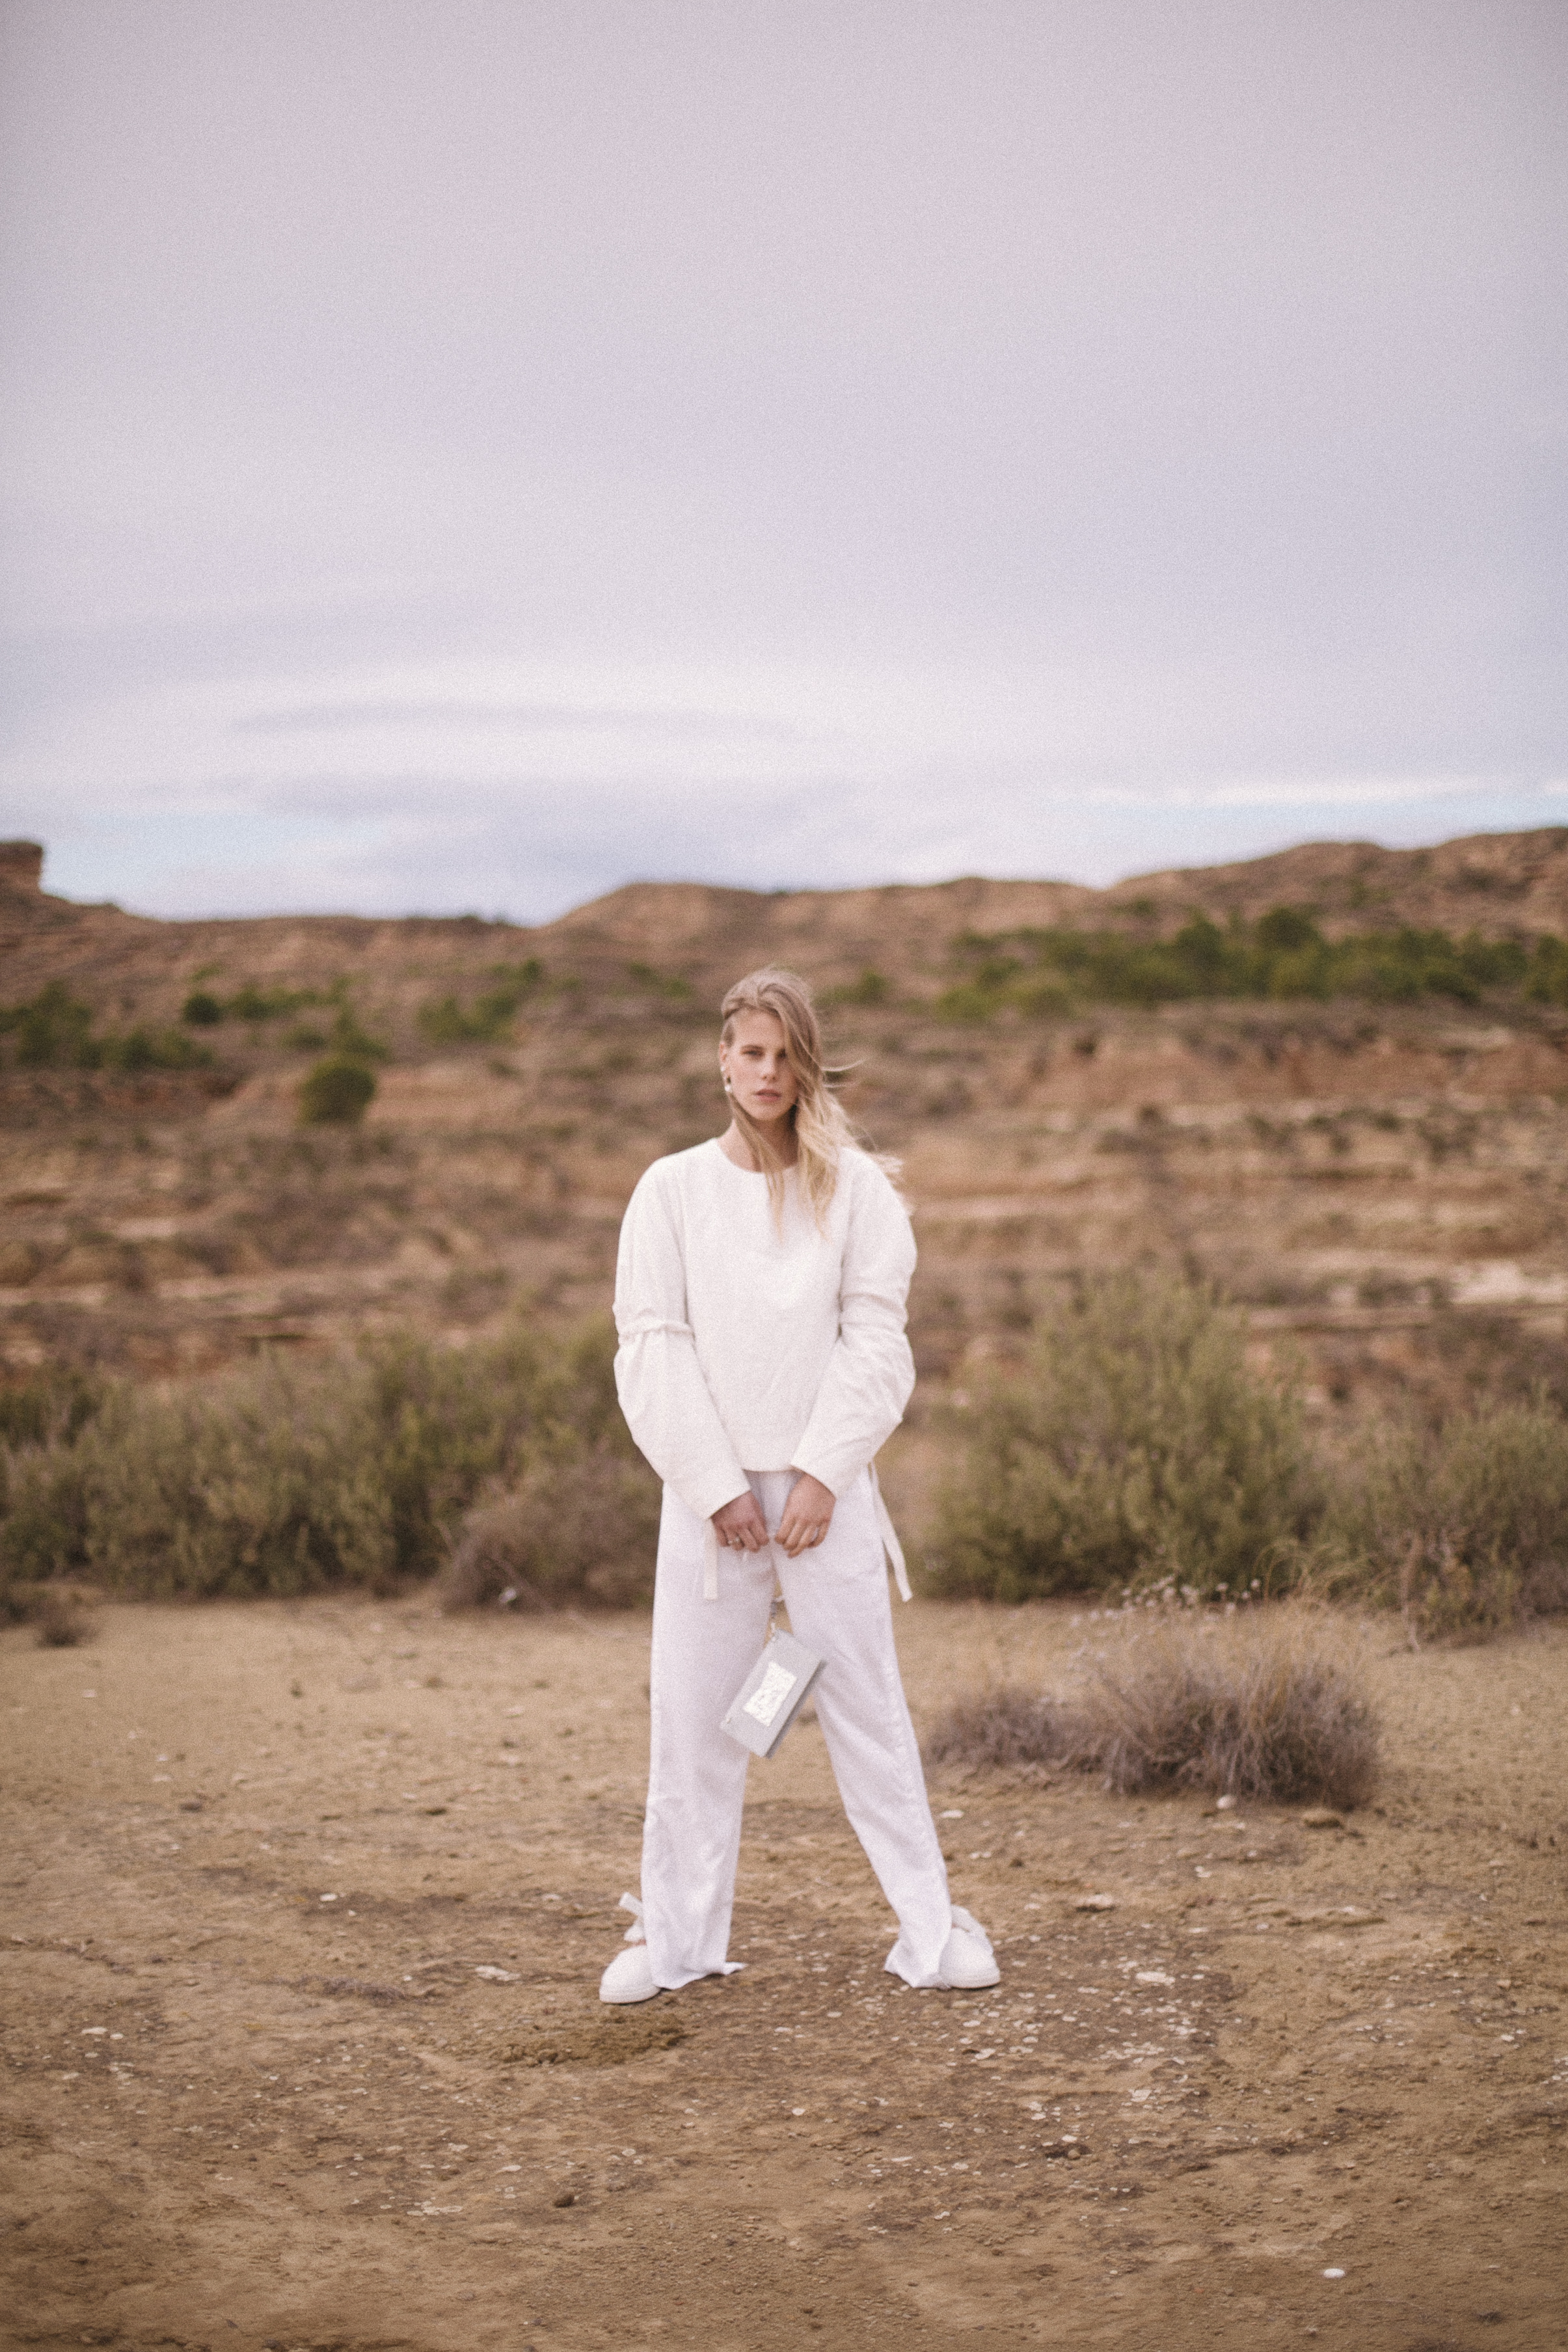 Top  COS  Trousers  FILIPPA K  Bag and Shoes  CHARLES AND KEITH